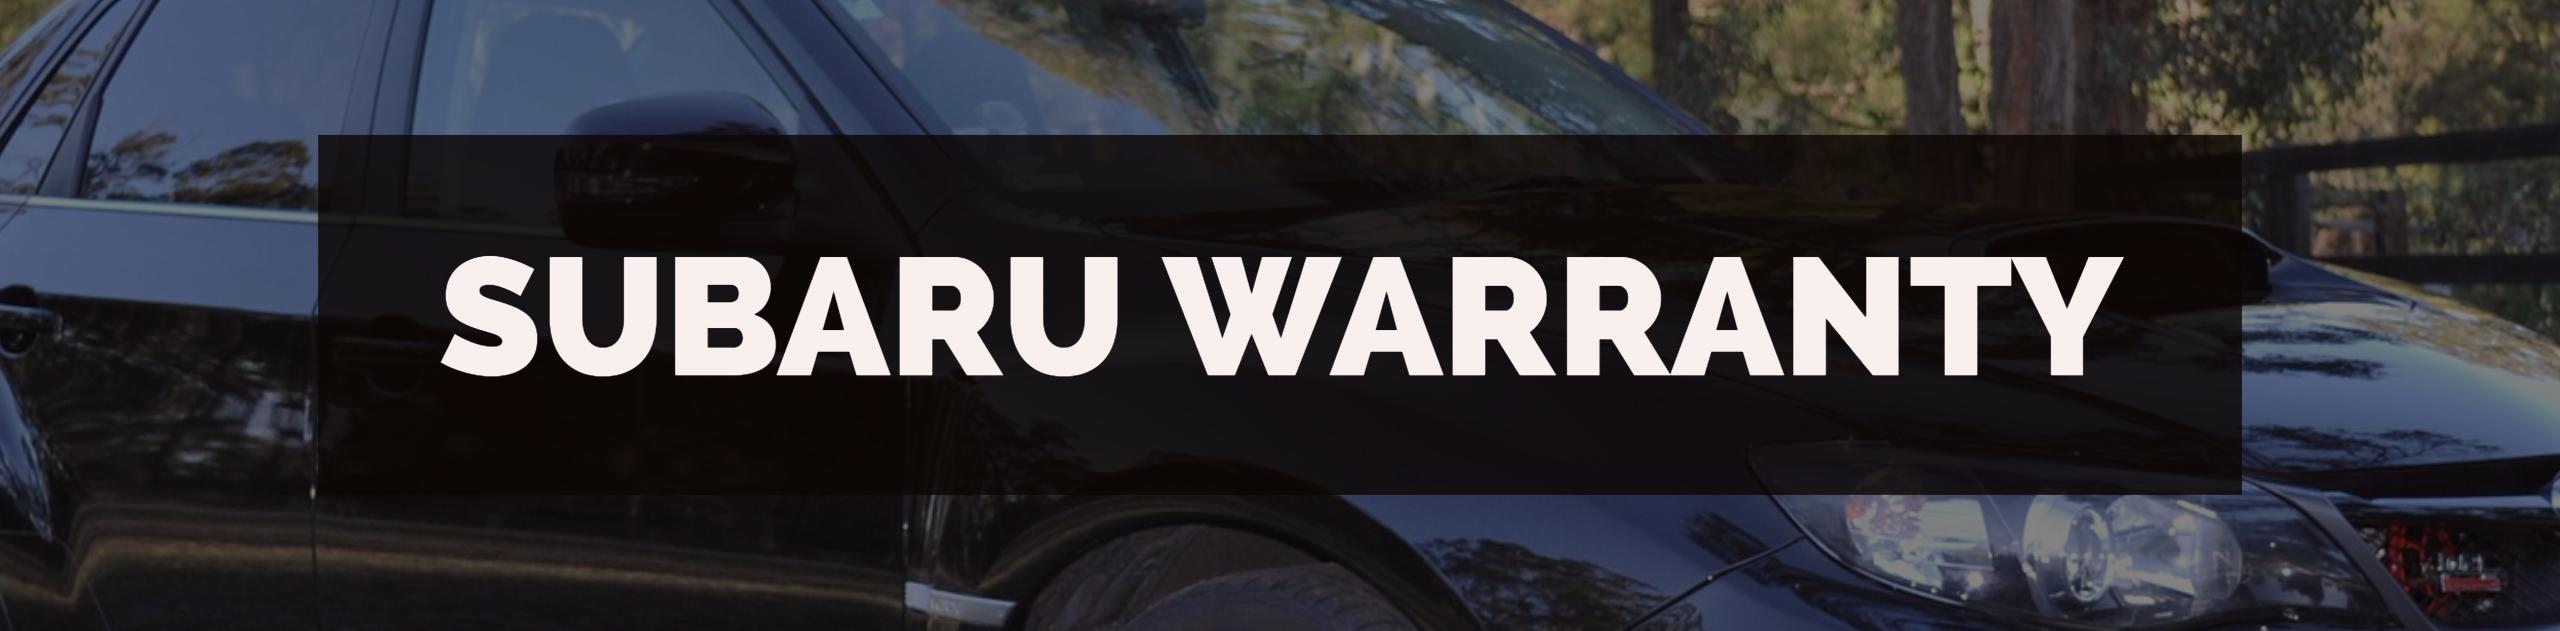 Subaru Warranty Processing, Training, Auditing